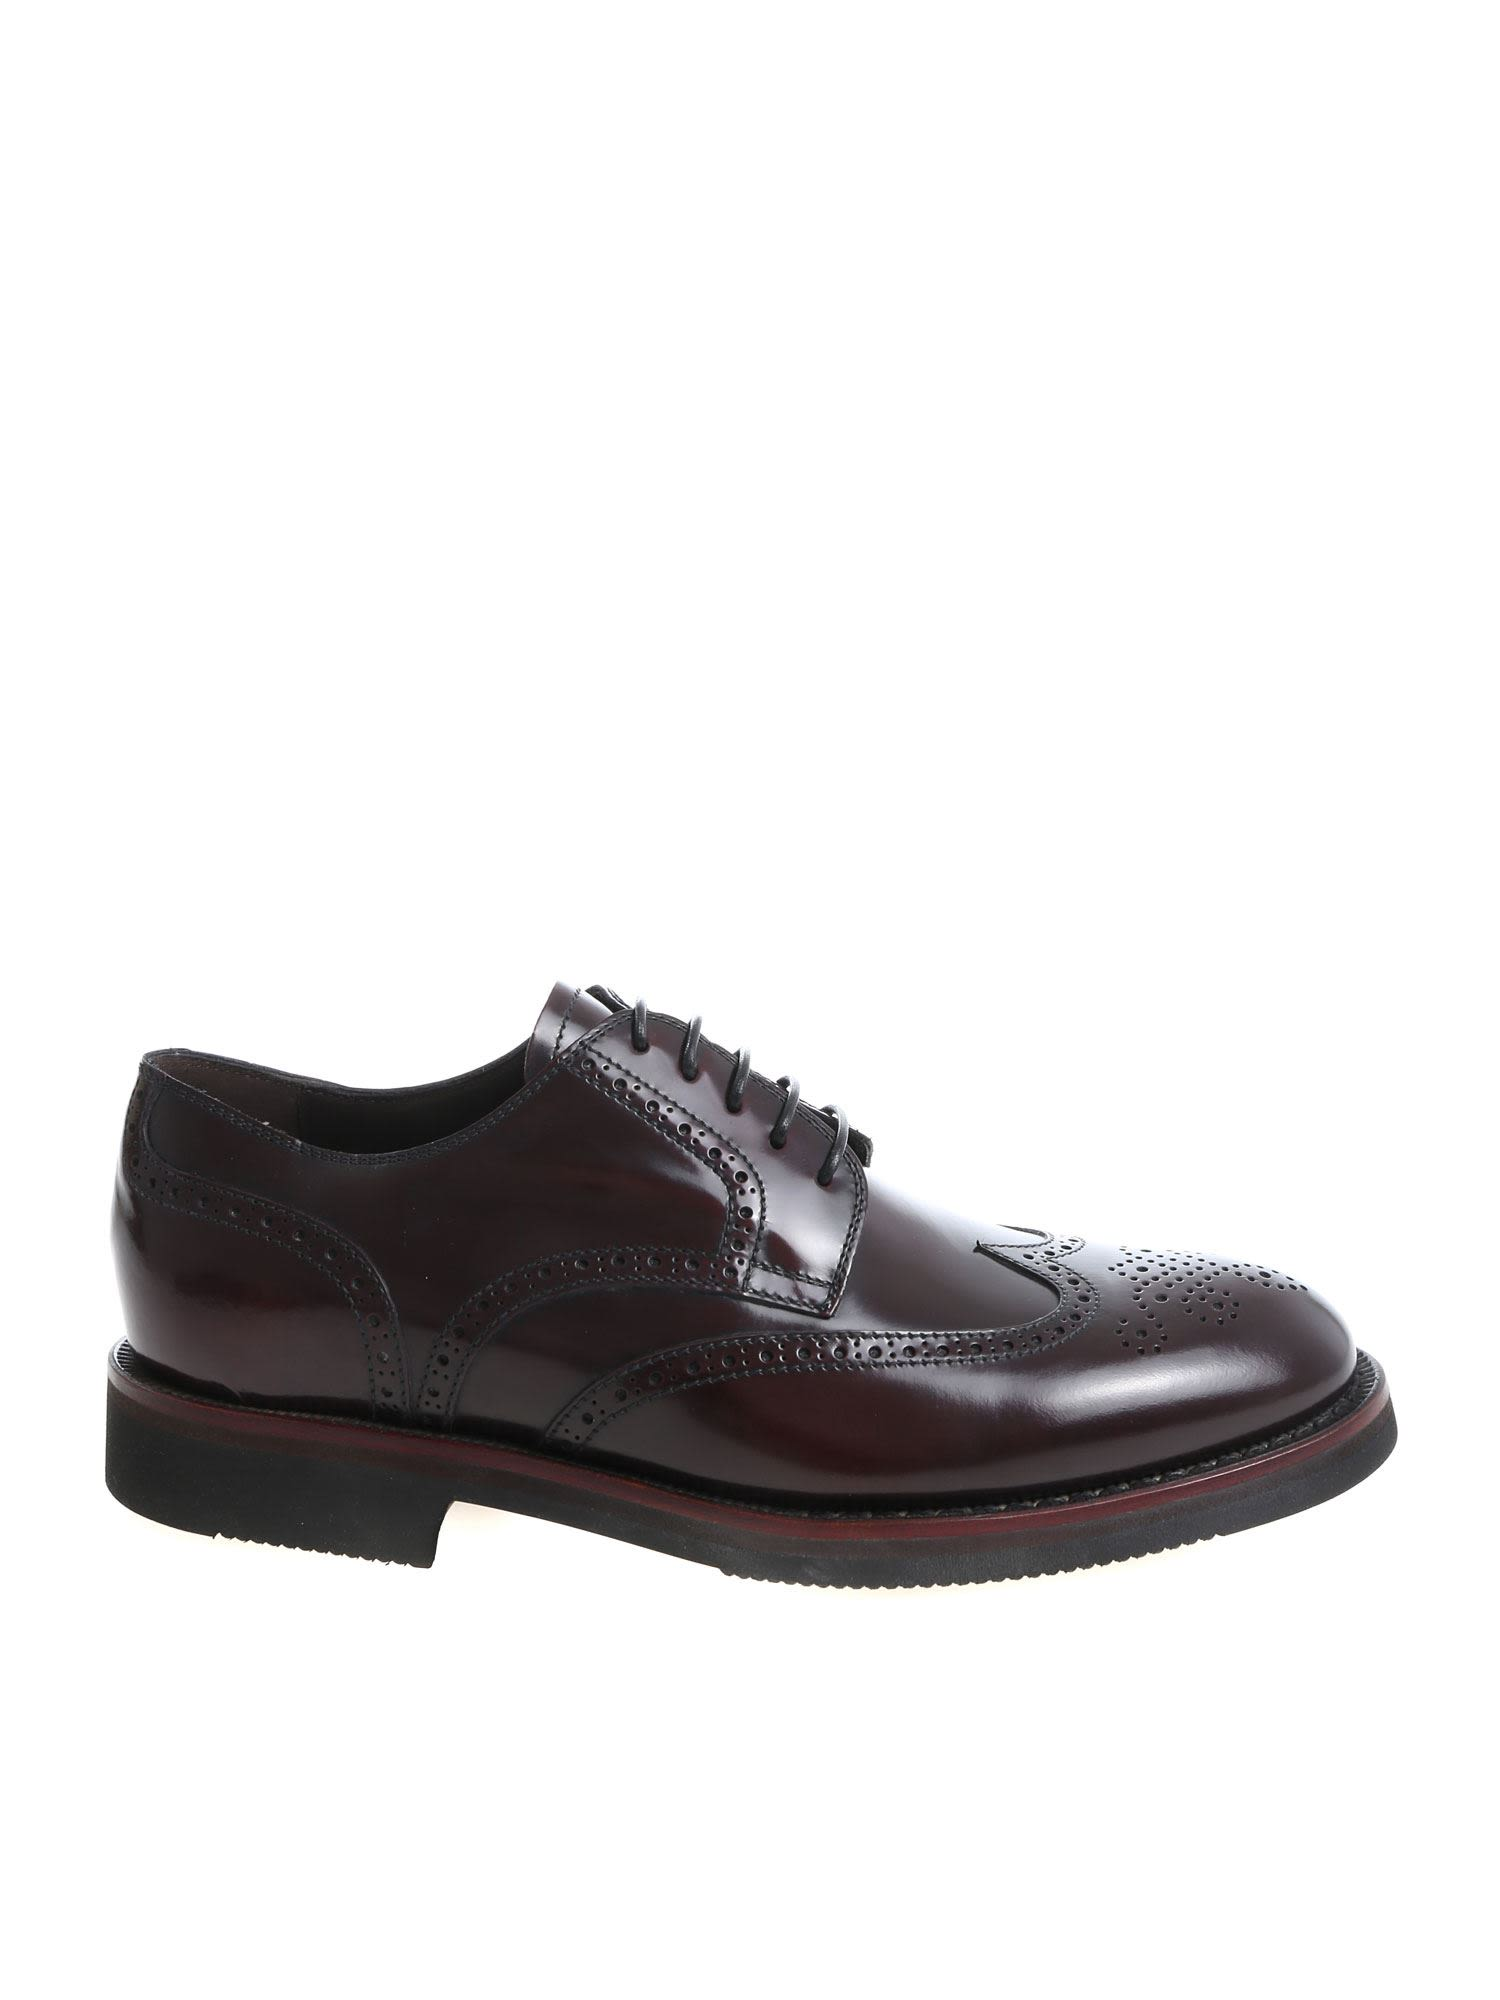 BLU BARRETT Perforated Derby Shoes in Bordeaux